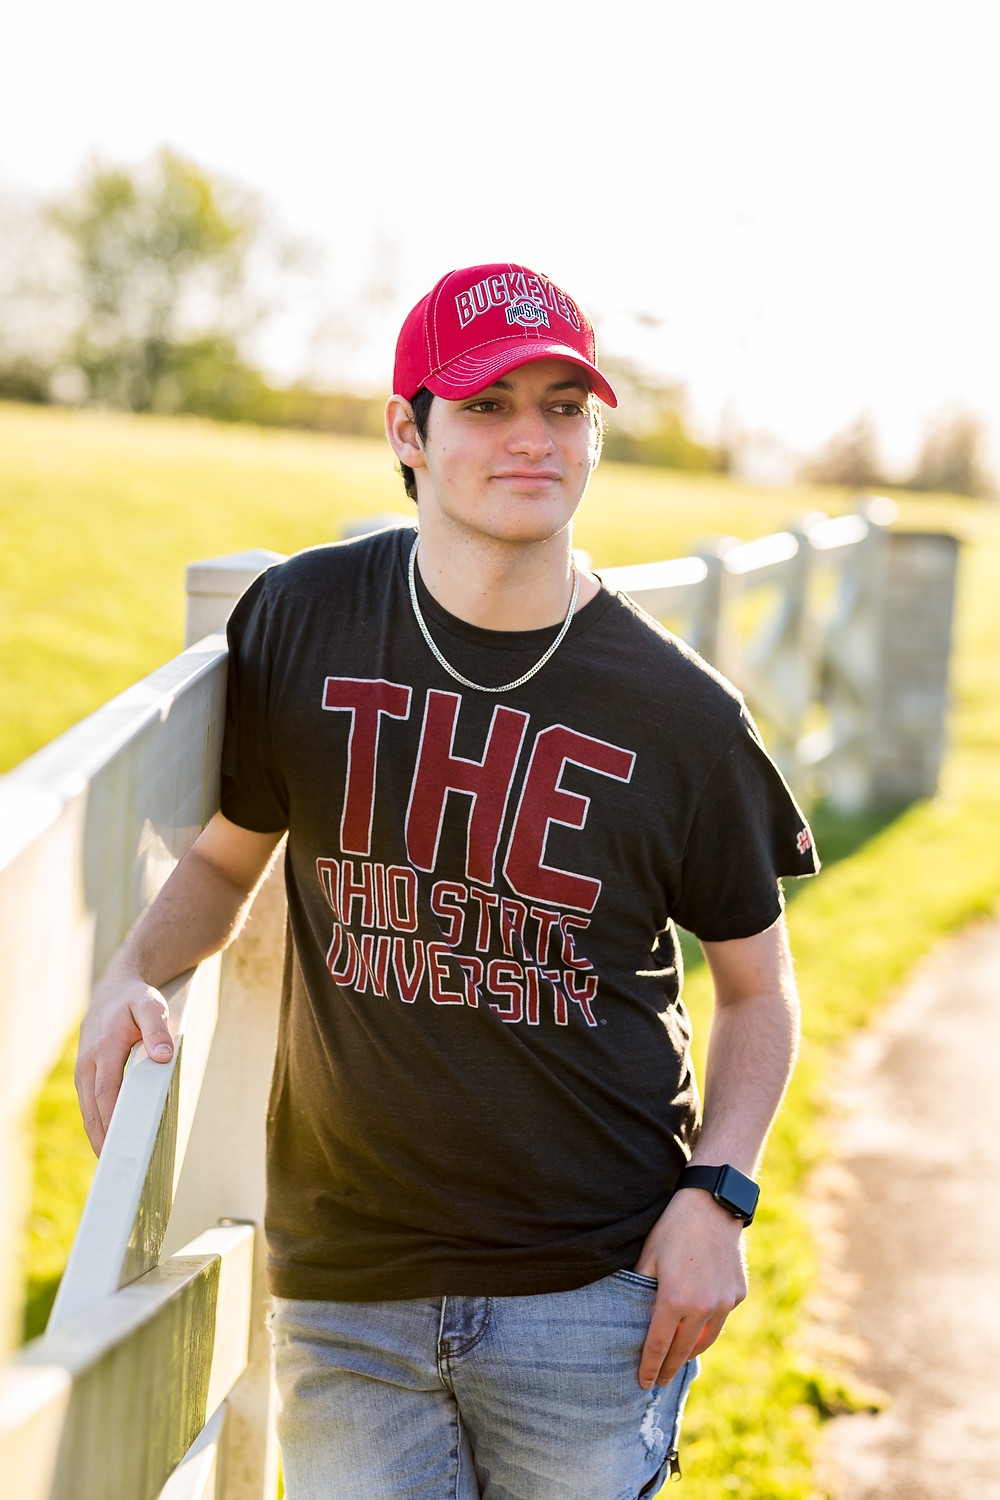 Senior Photo of Westerville Central teen wearing OSU T-shirt and cap